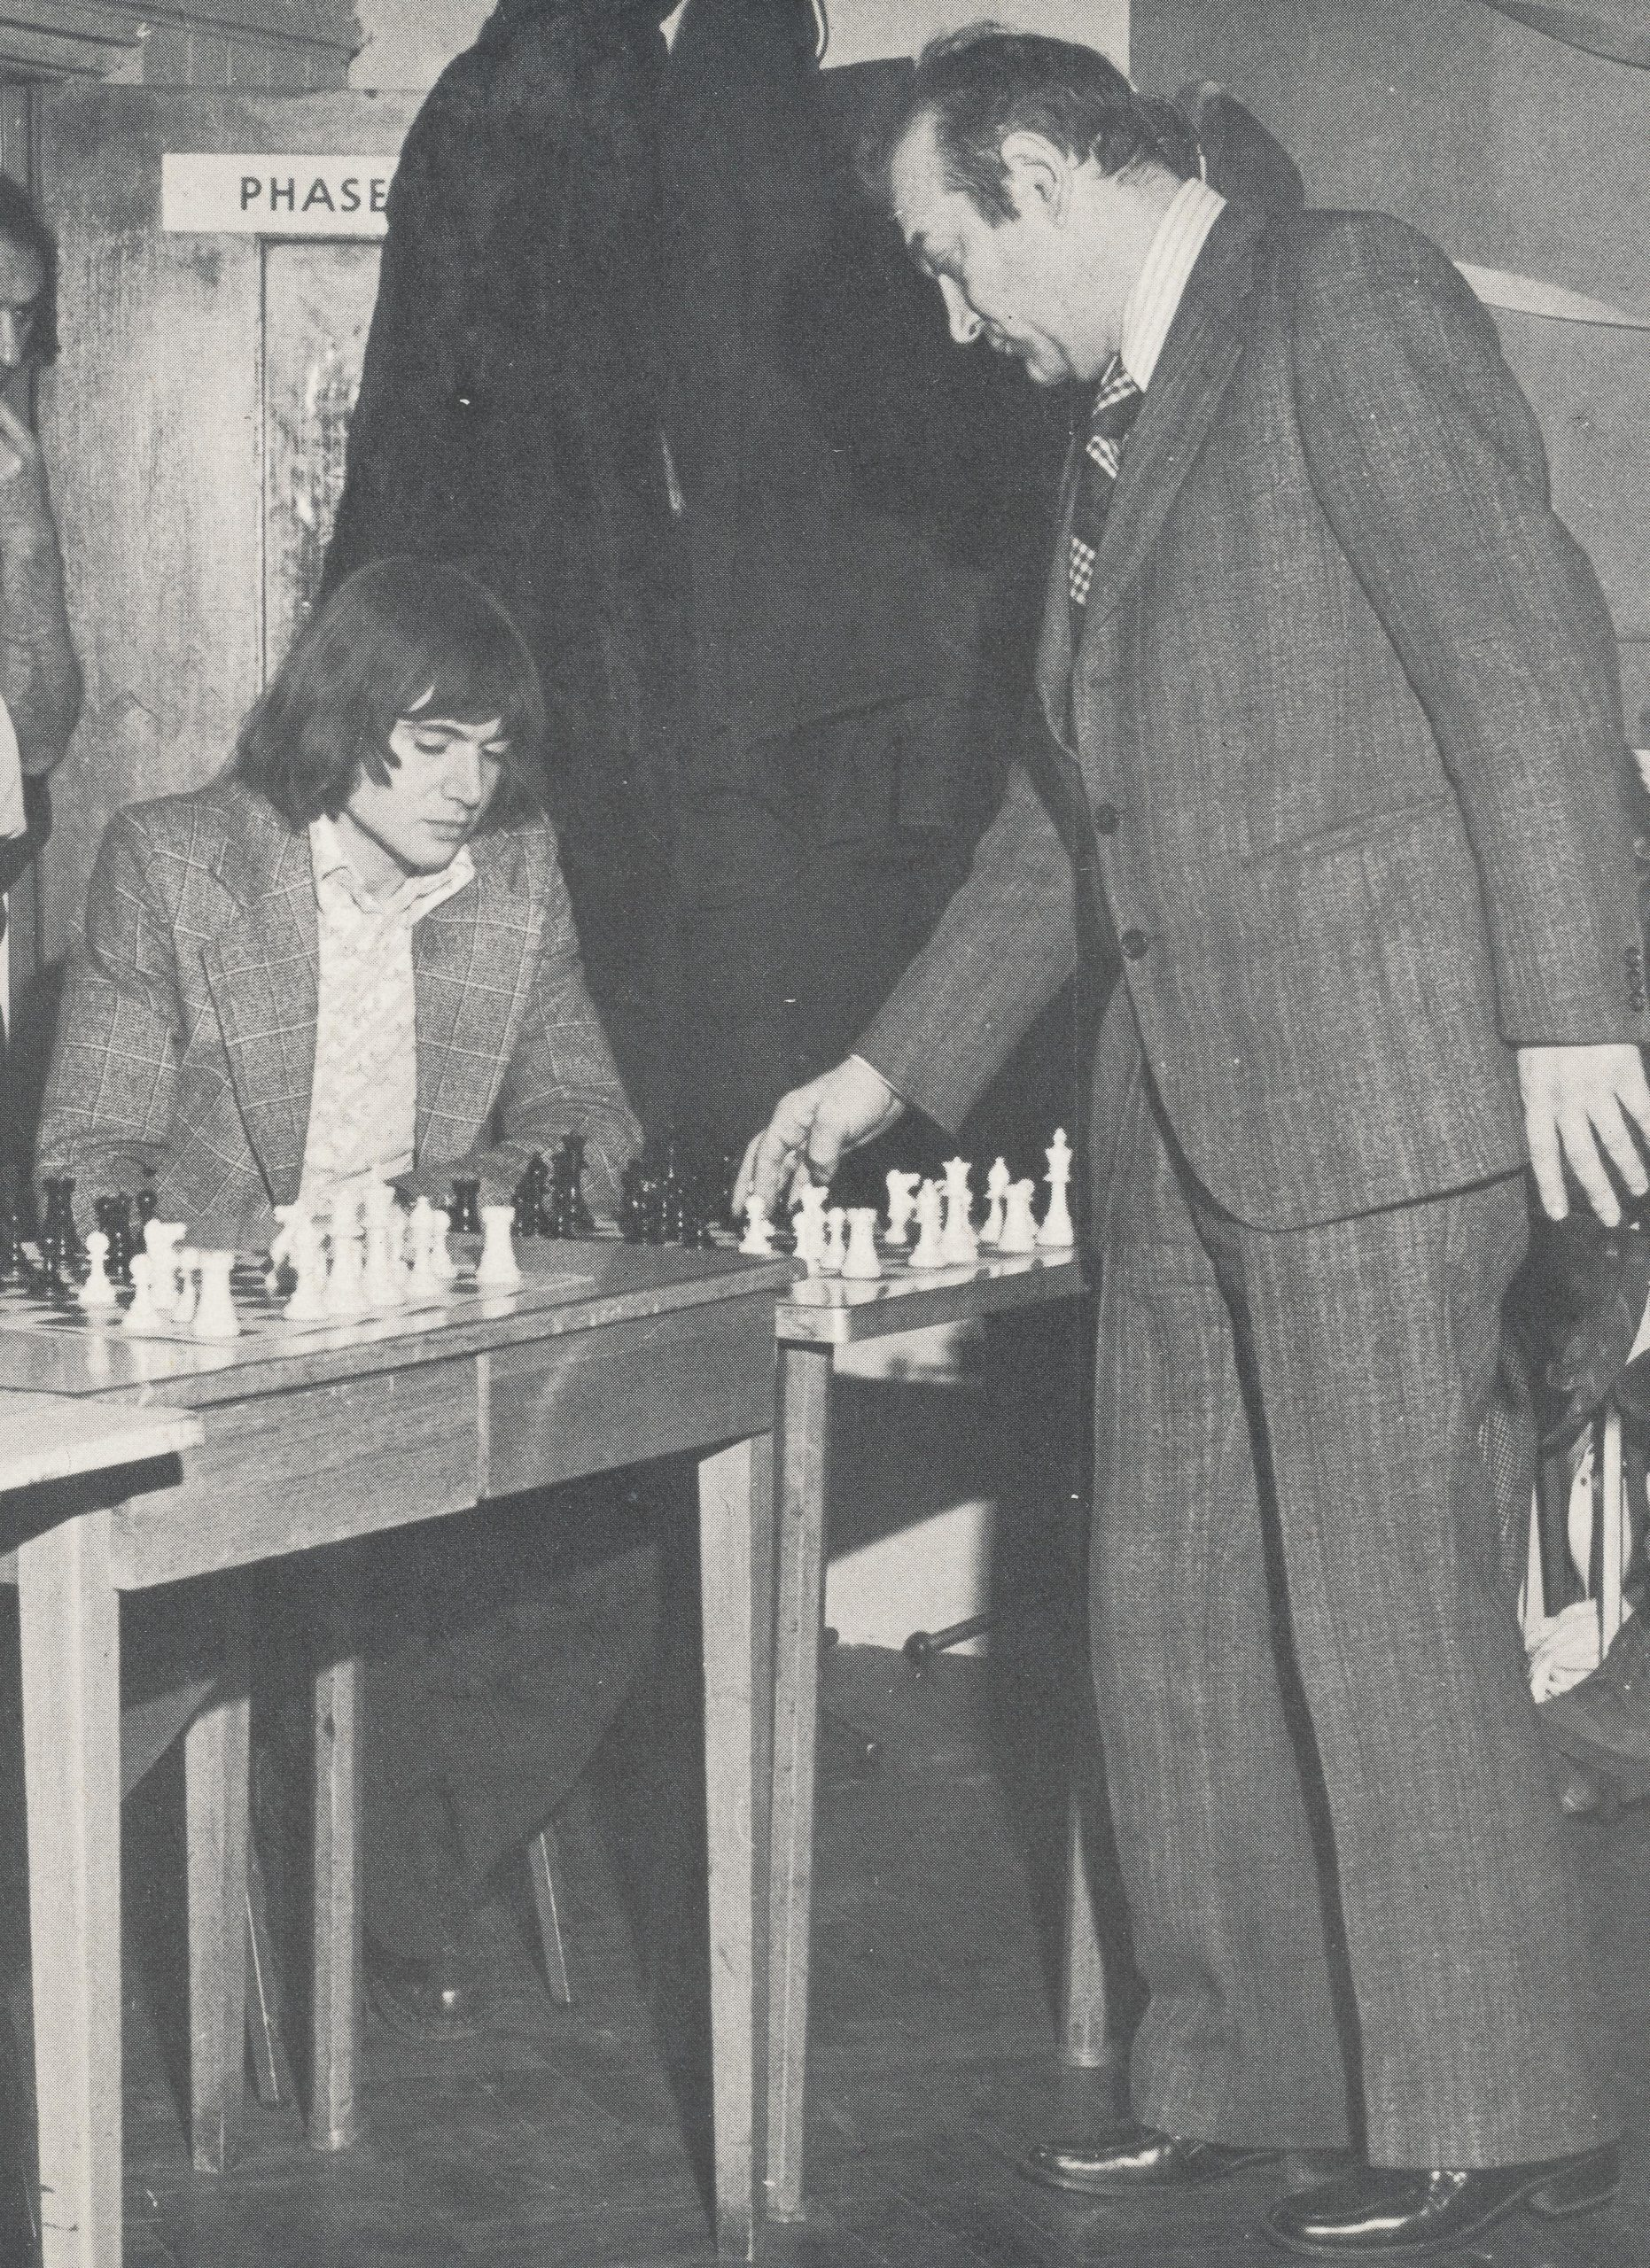 Jimmy plays Viktor Korchnoi at the Endell Street premises of London Central YMCA on January 18th, 1976. Photographer potentially John Yeo